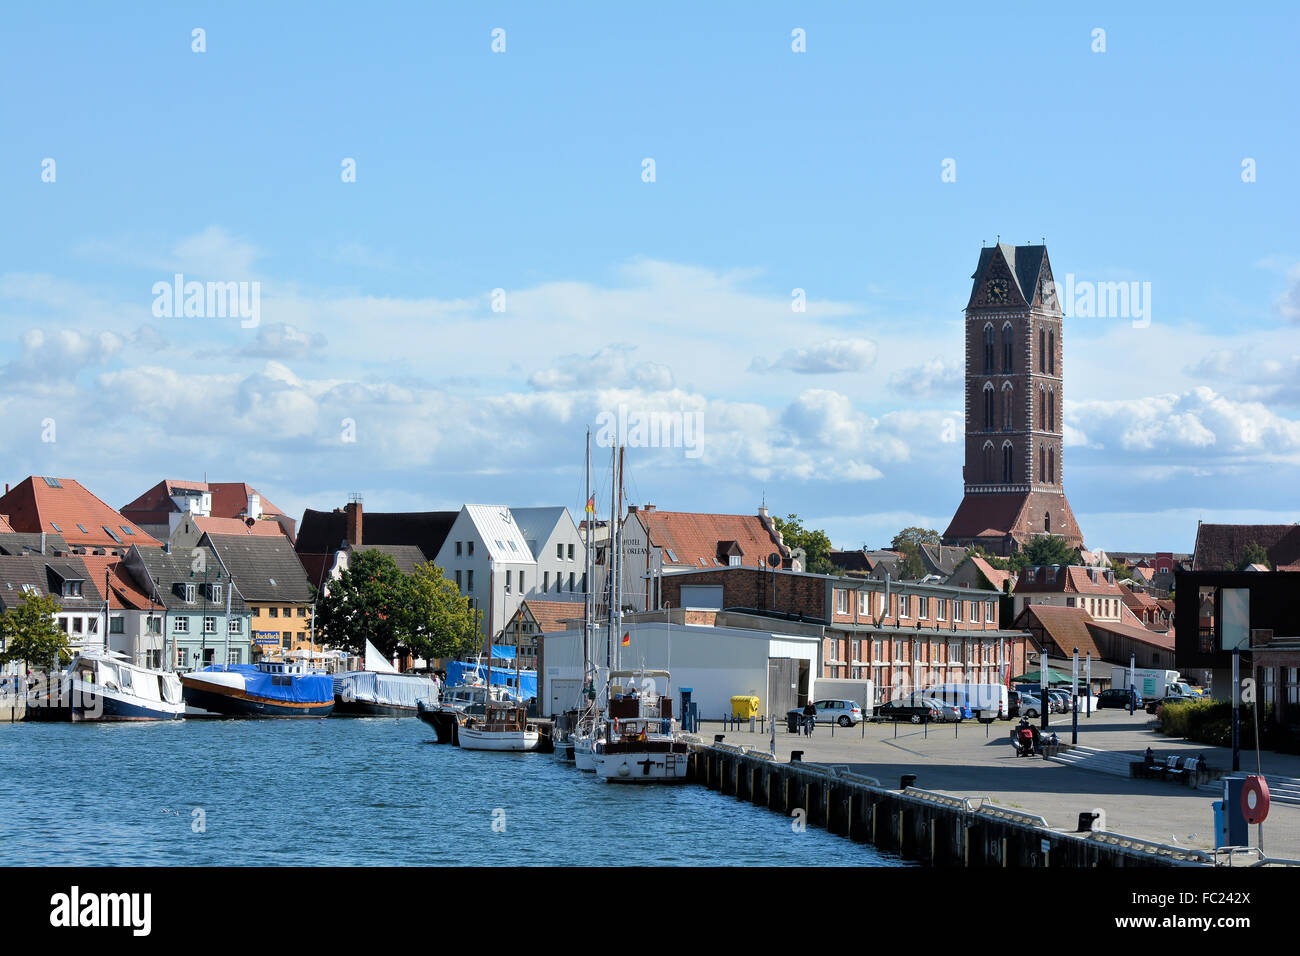 Old town of Wismar Stock Photo